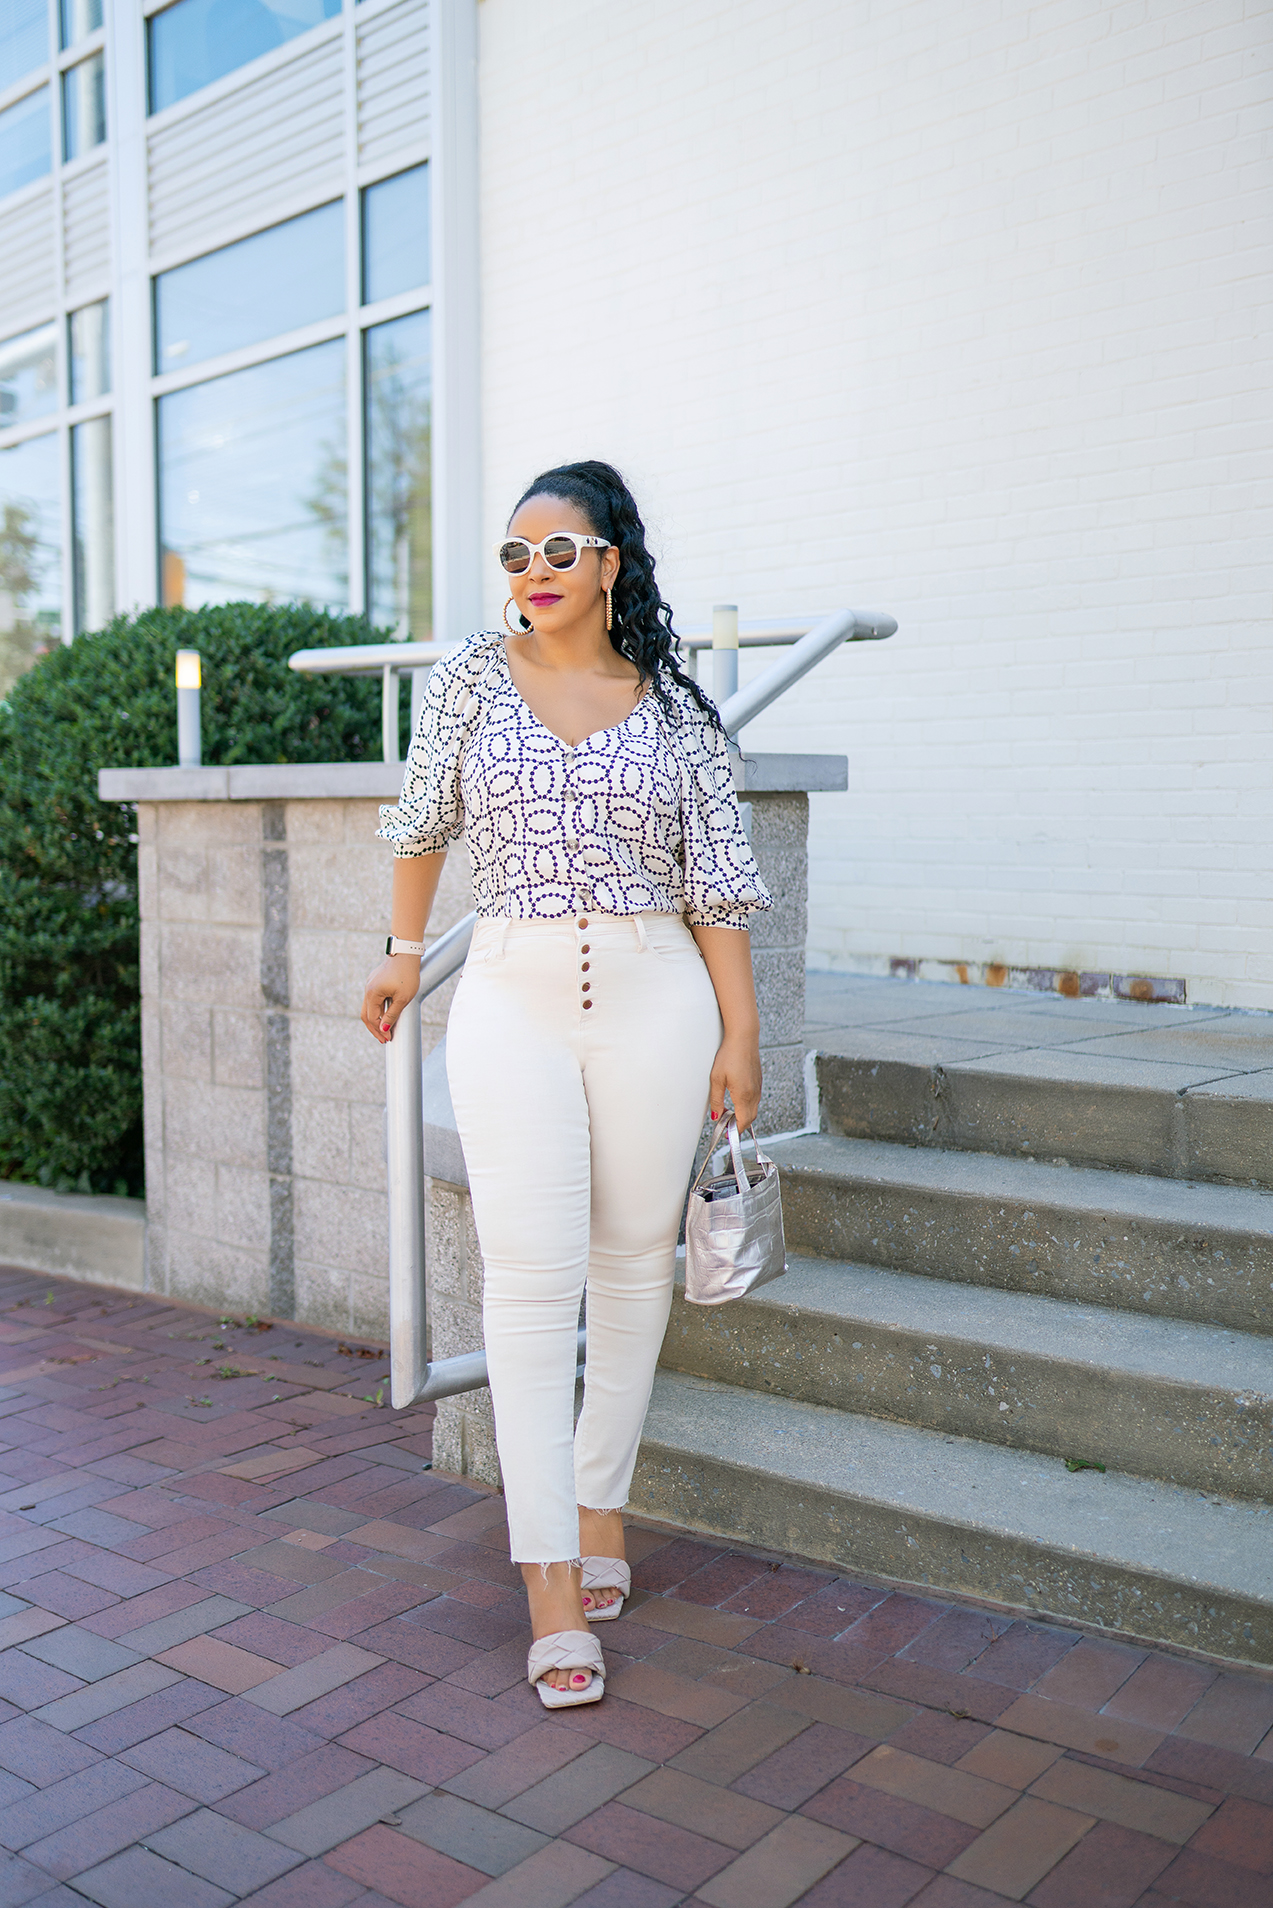 Work From Home Wear, What I'm Wearing: H&M Puff-sleeved print button front blouse, Universal Thread High-Rise Skinny Ankle Jeans, Gucci white pearl frame sunglasses, Open Toe Diamond Band Stiletto Mule Heels, Furla Mini Tote Bag, What's Haute